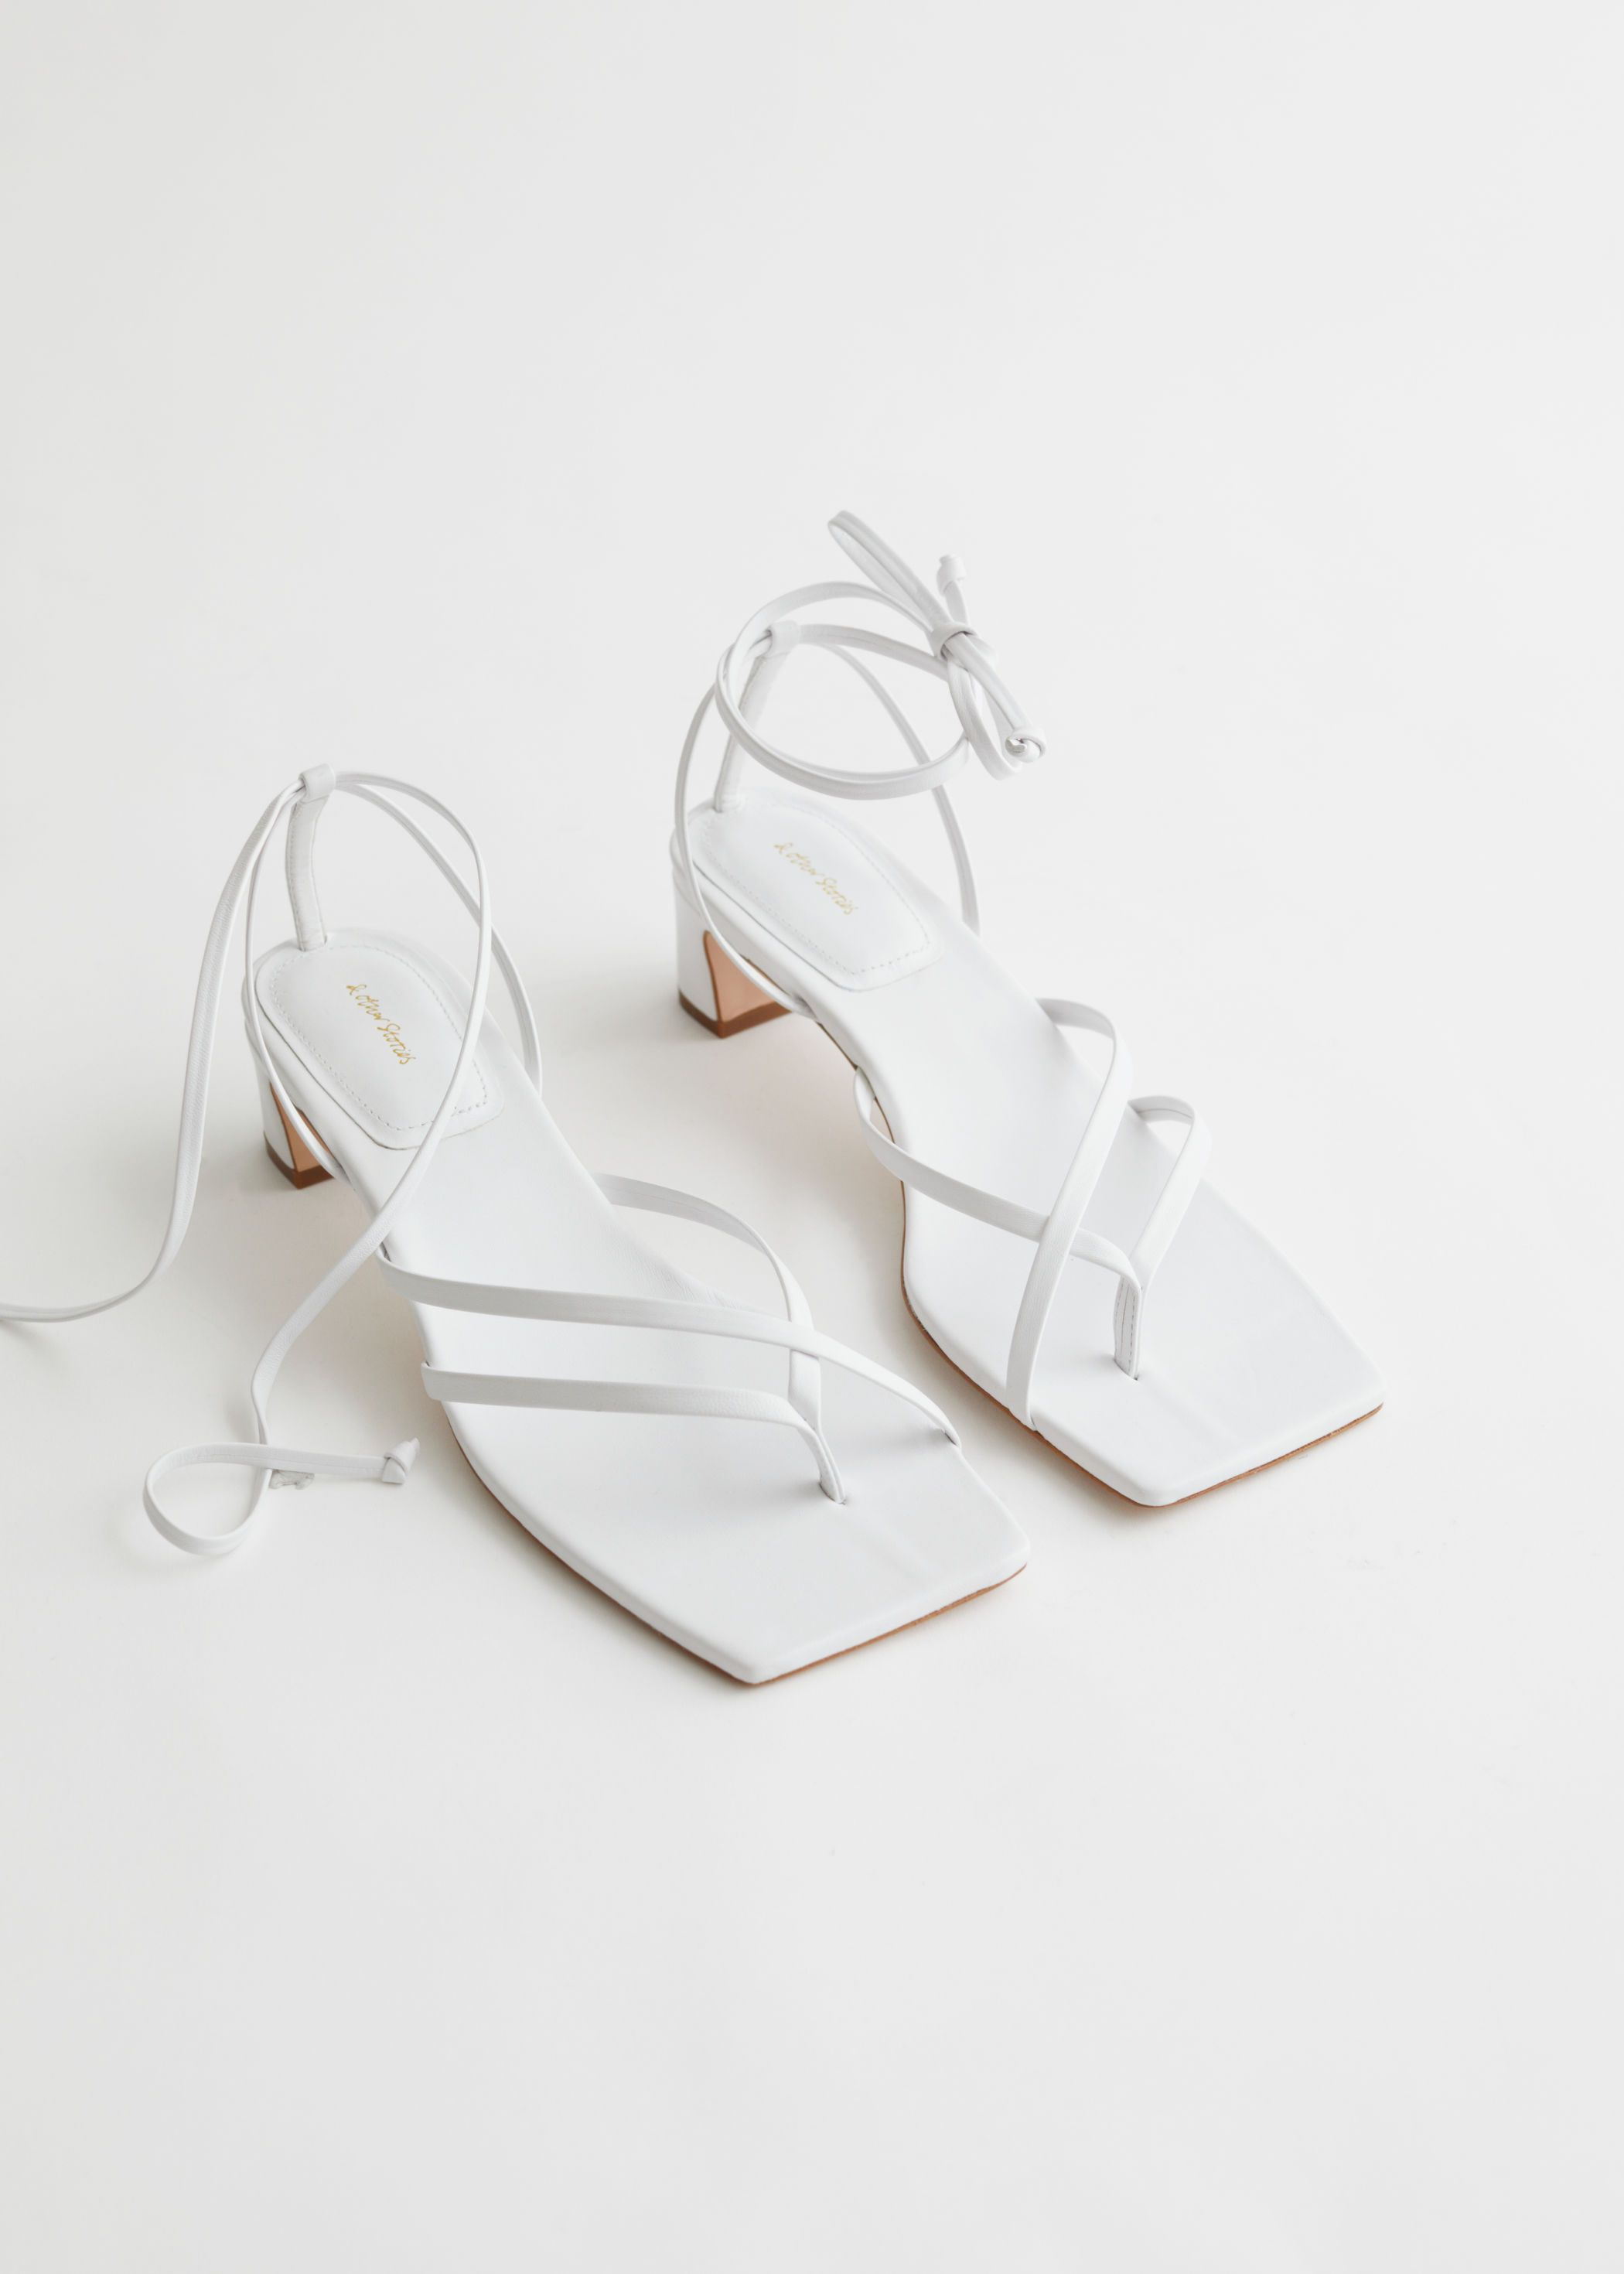 7 Shoes That Will Go With Every Single Dress You Own